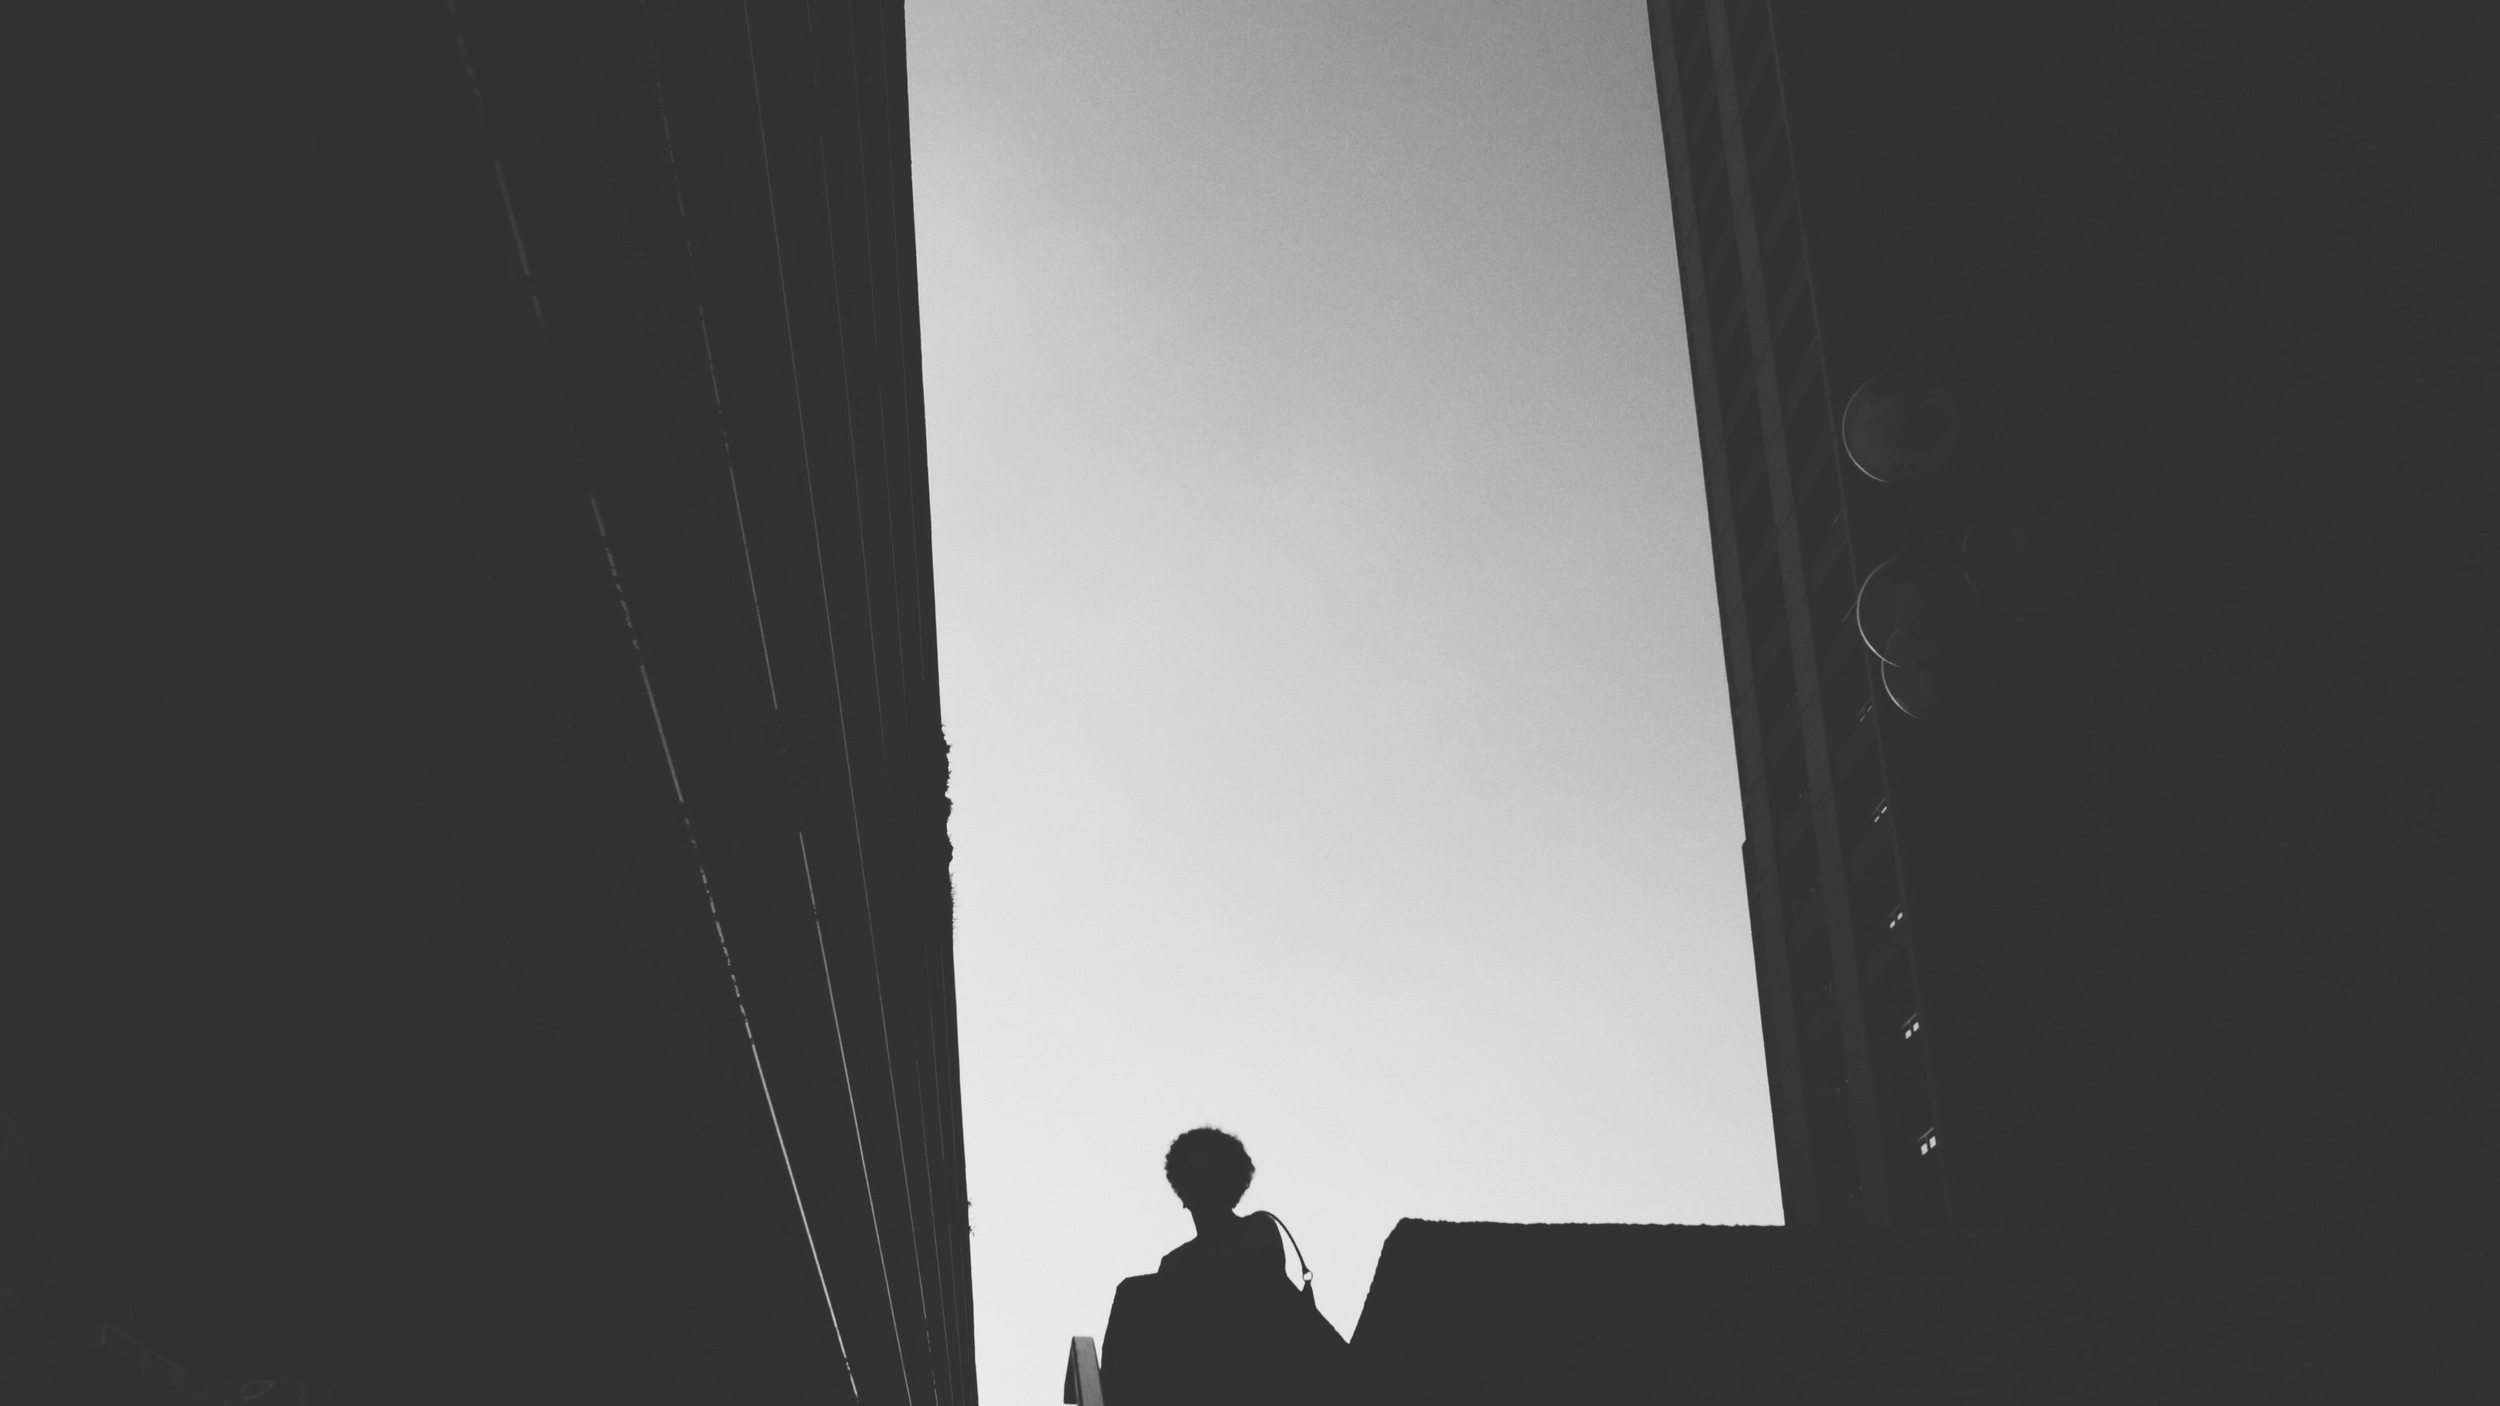 Silhouette caught between towers